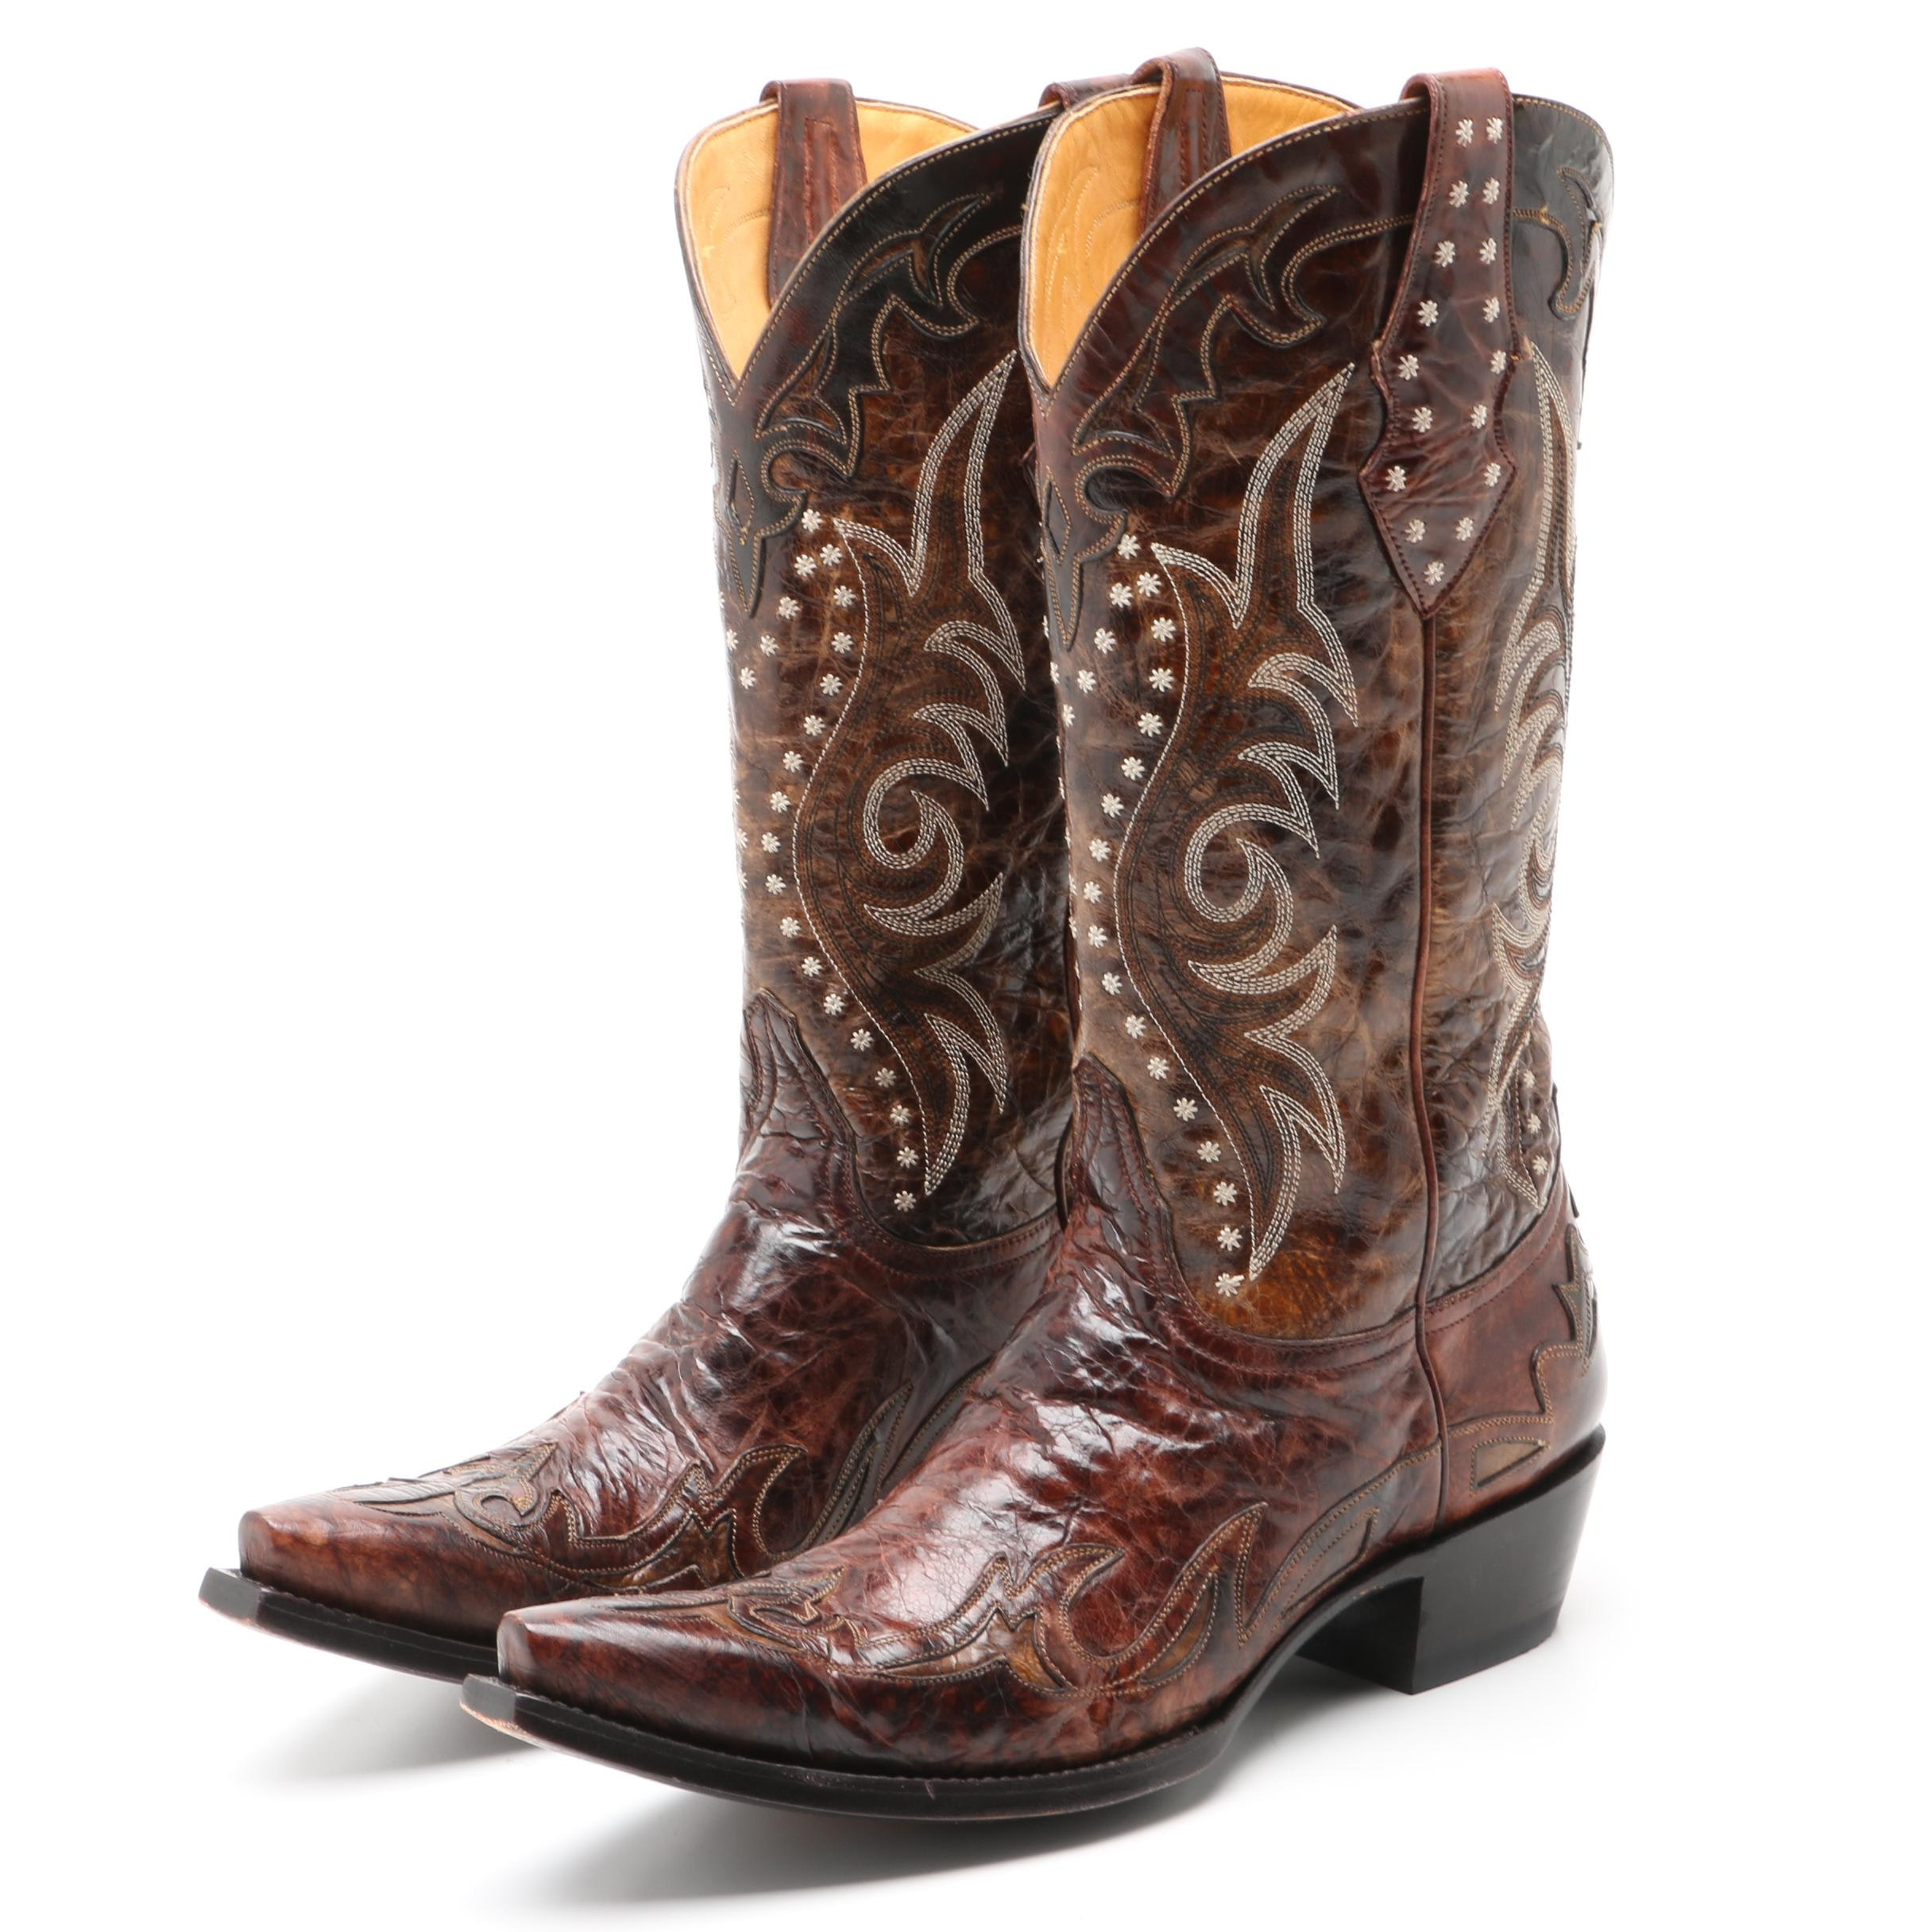 Women's Old Gringo Hand Crafted Leather Boots